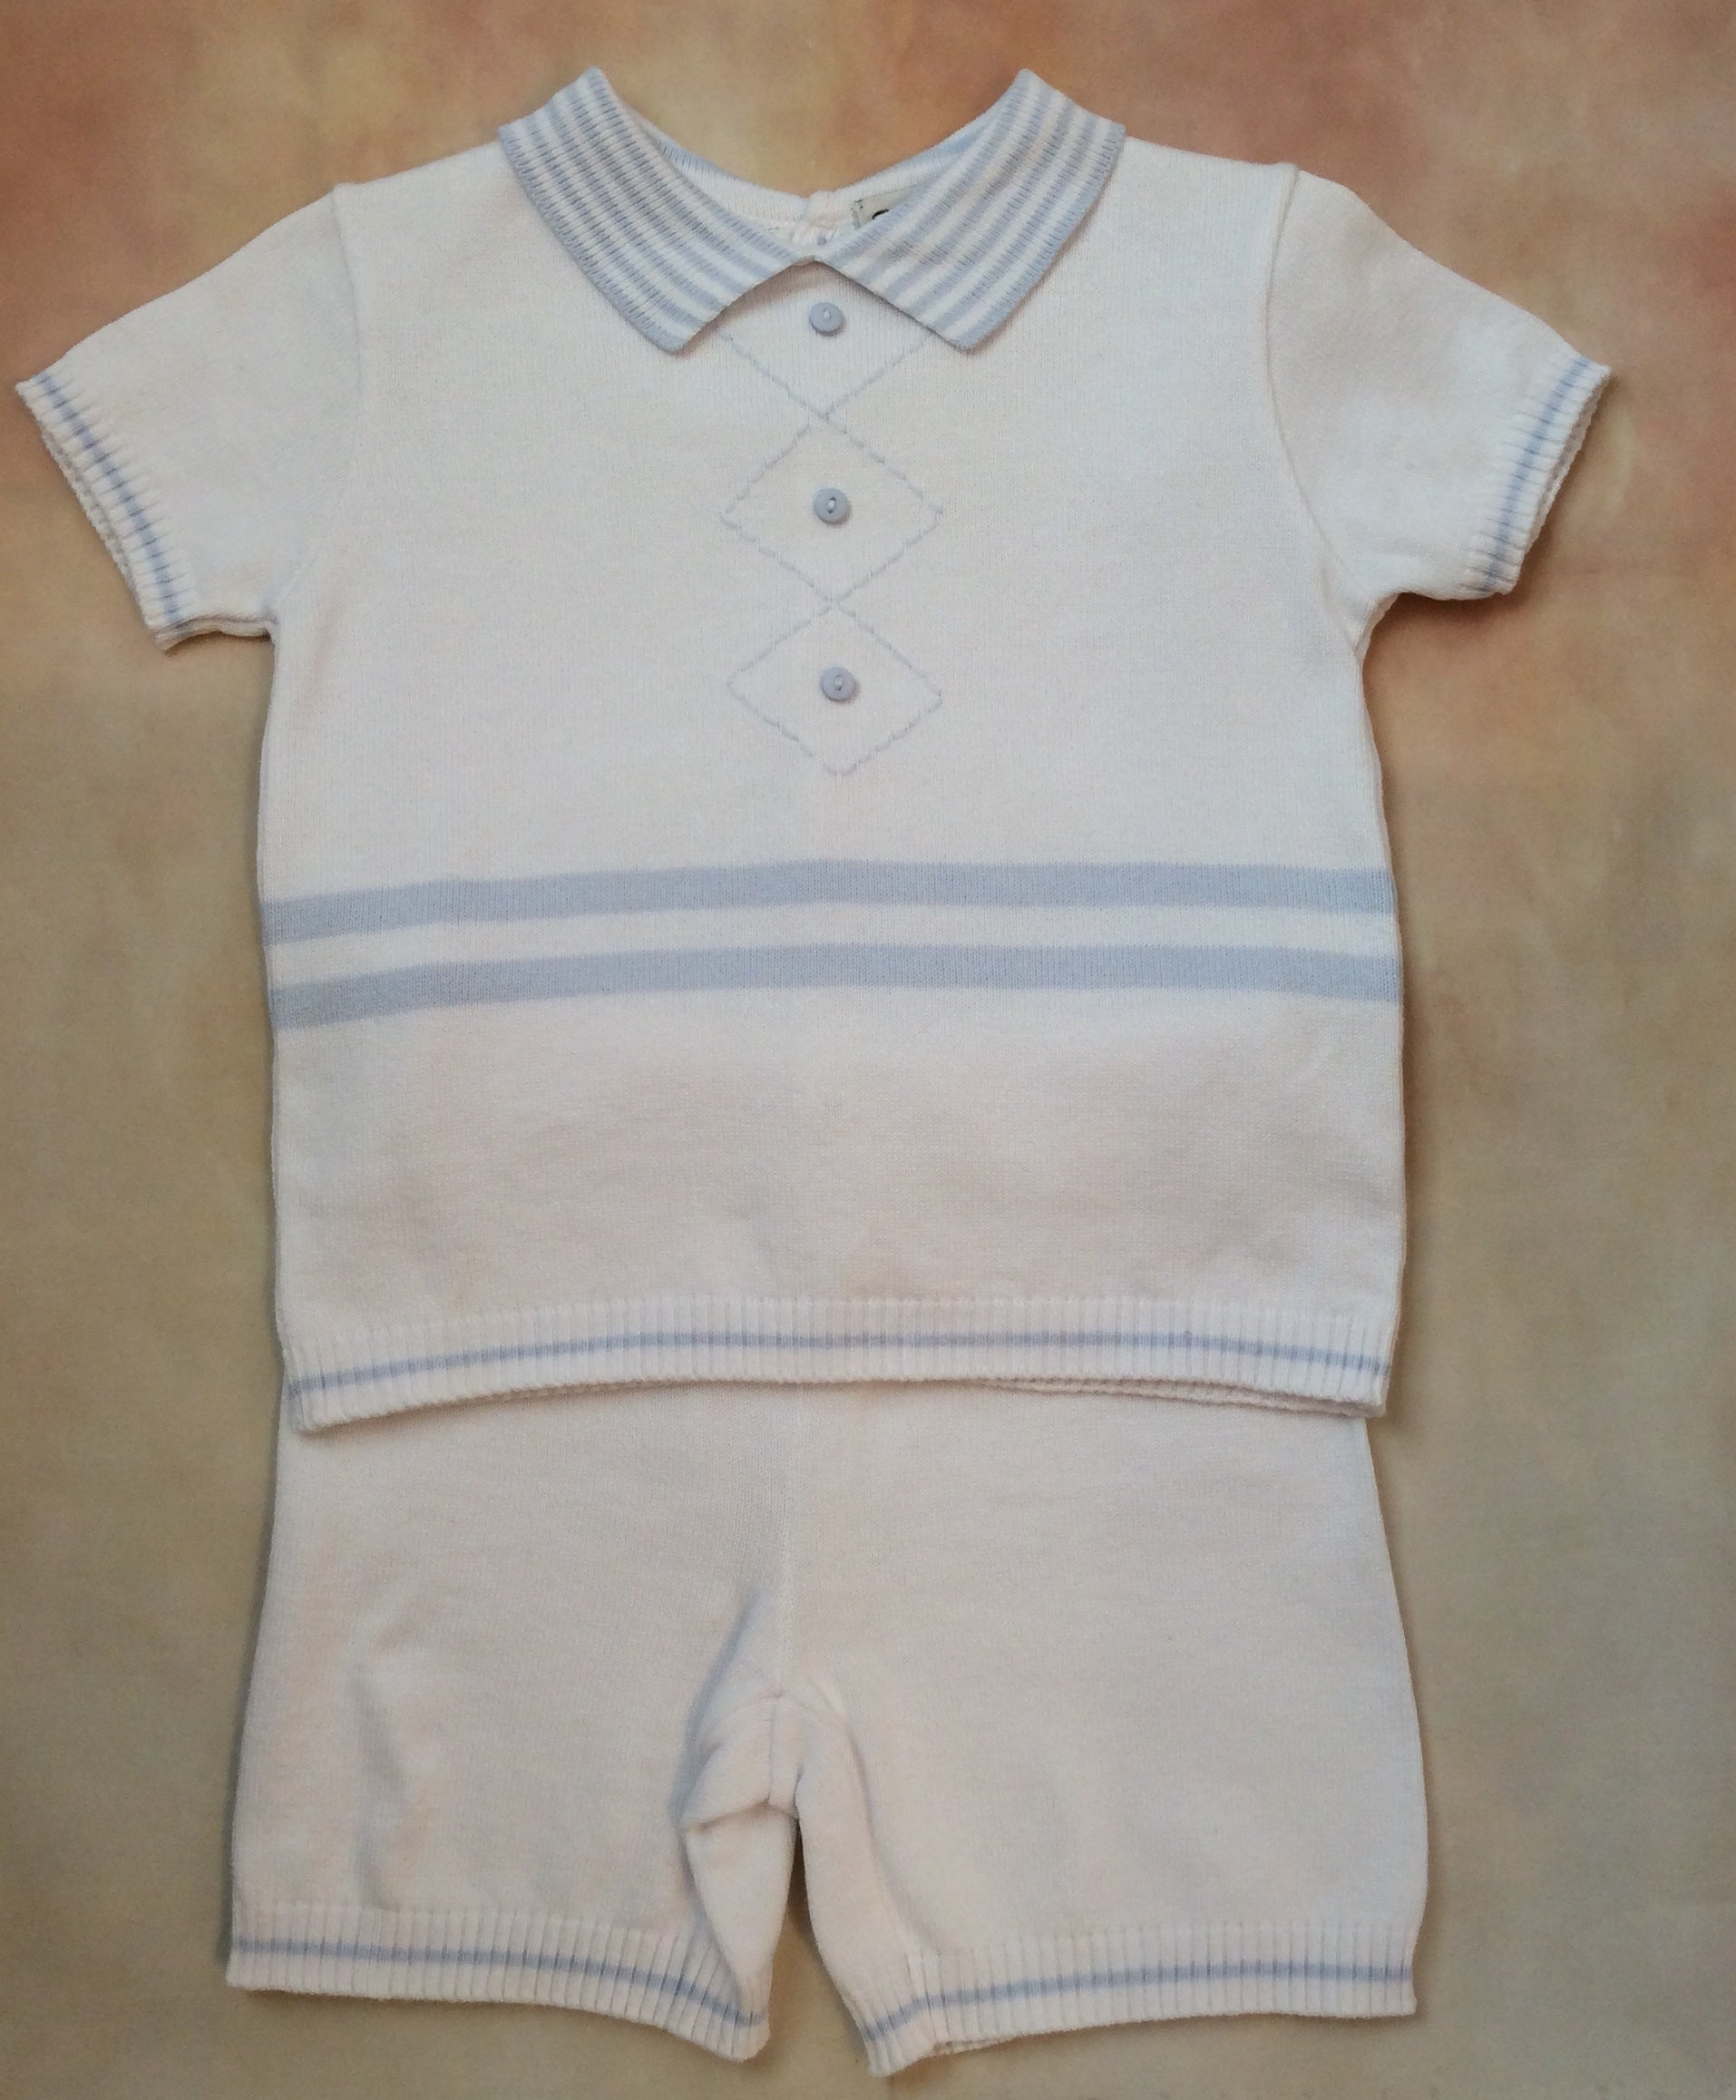 SL008055 boys two piece knit set White/sky blue - Nenes Lullaby Boutique Inc